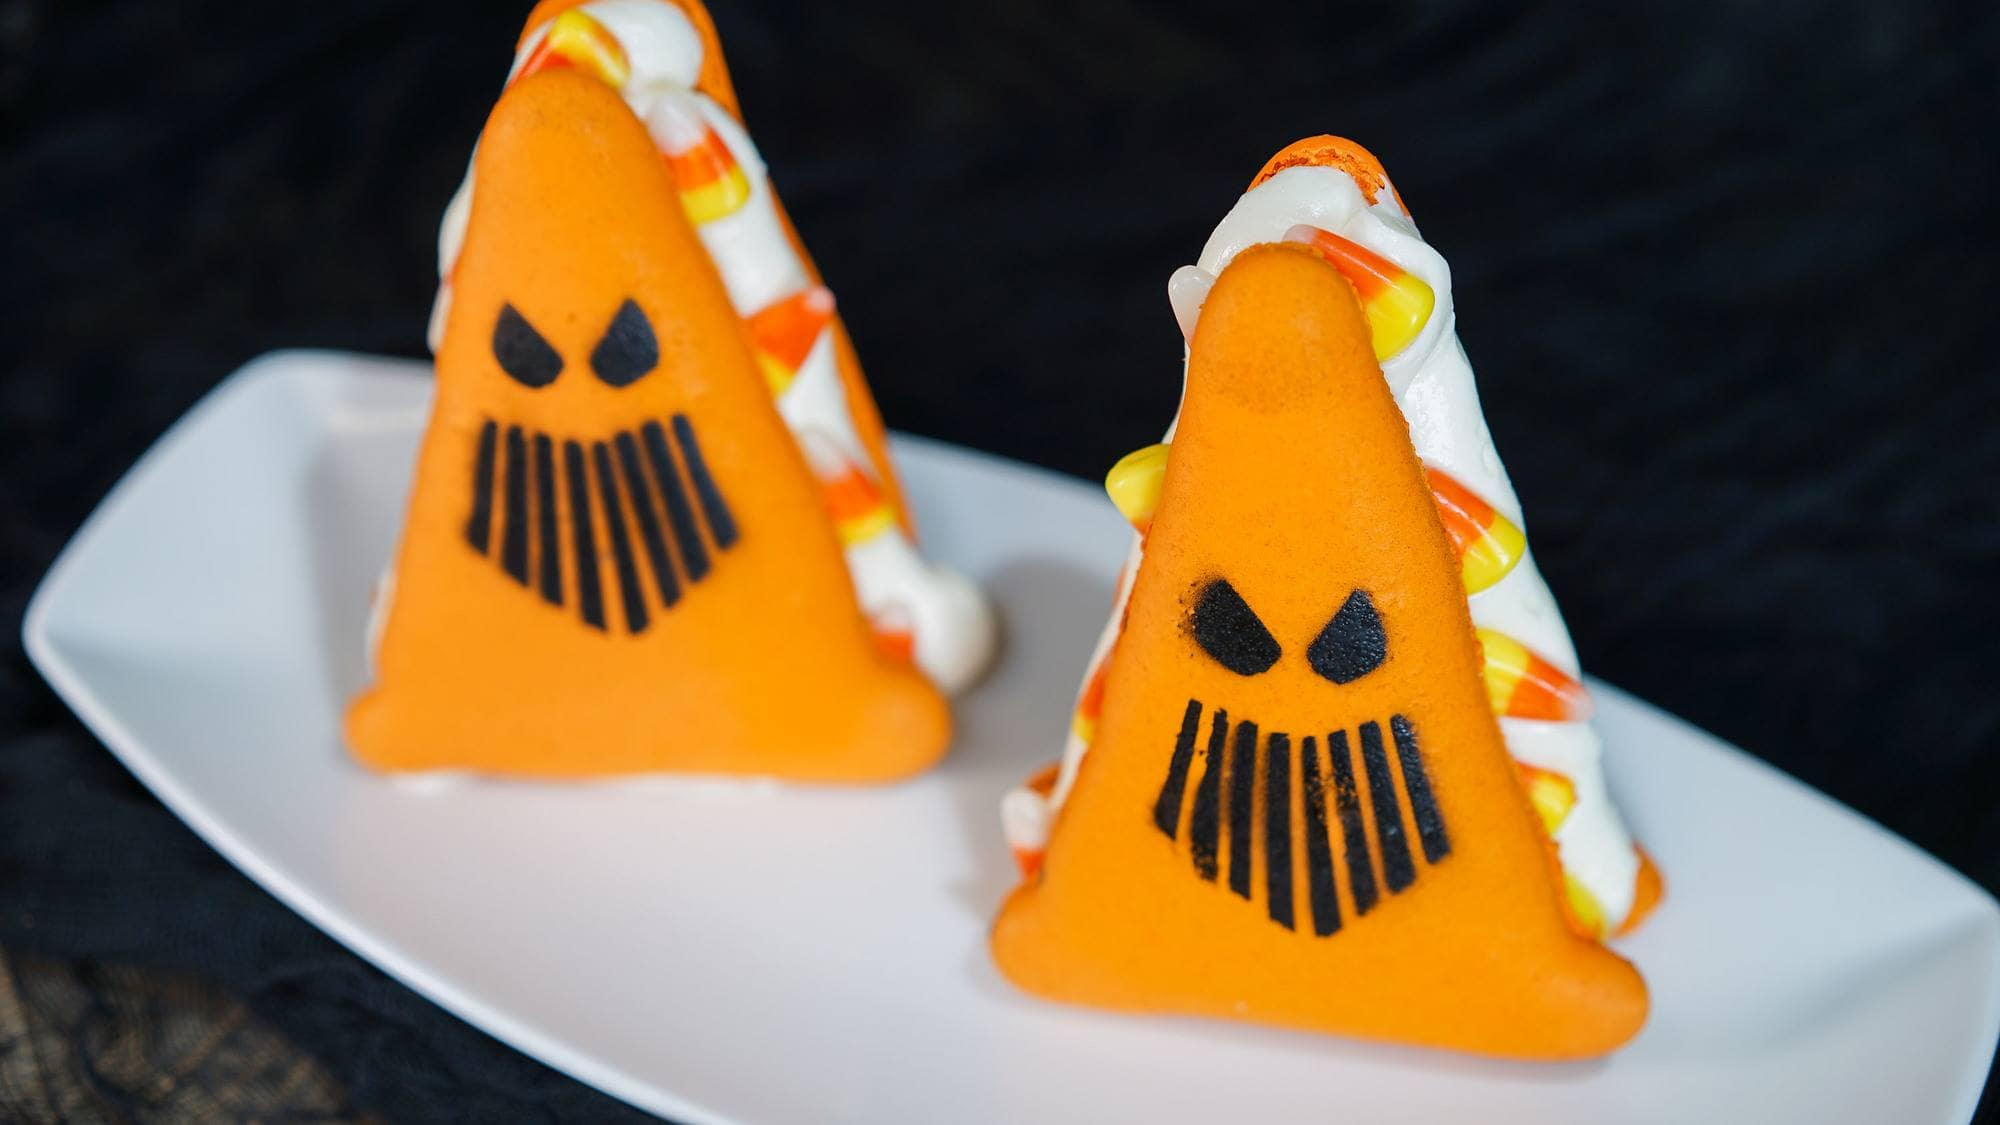 Spoke-y Cone Macaron filled with marshmallow buttercream and candy corn at the Cozy Cone Motel in Disney California Adventure during Mickey's Halloween Party with kids